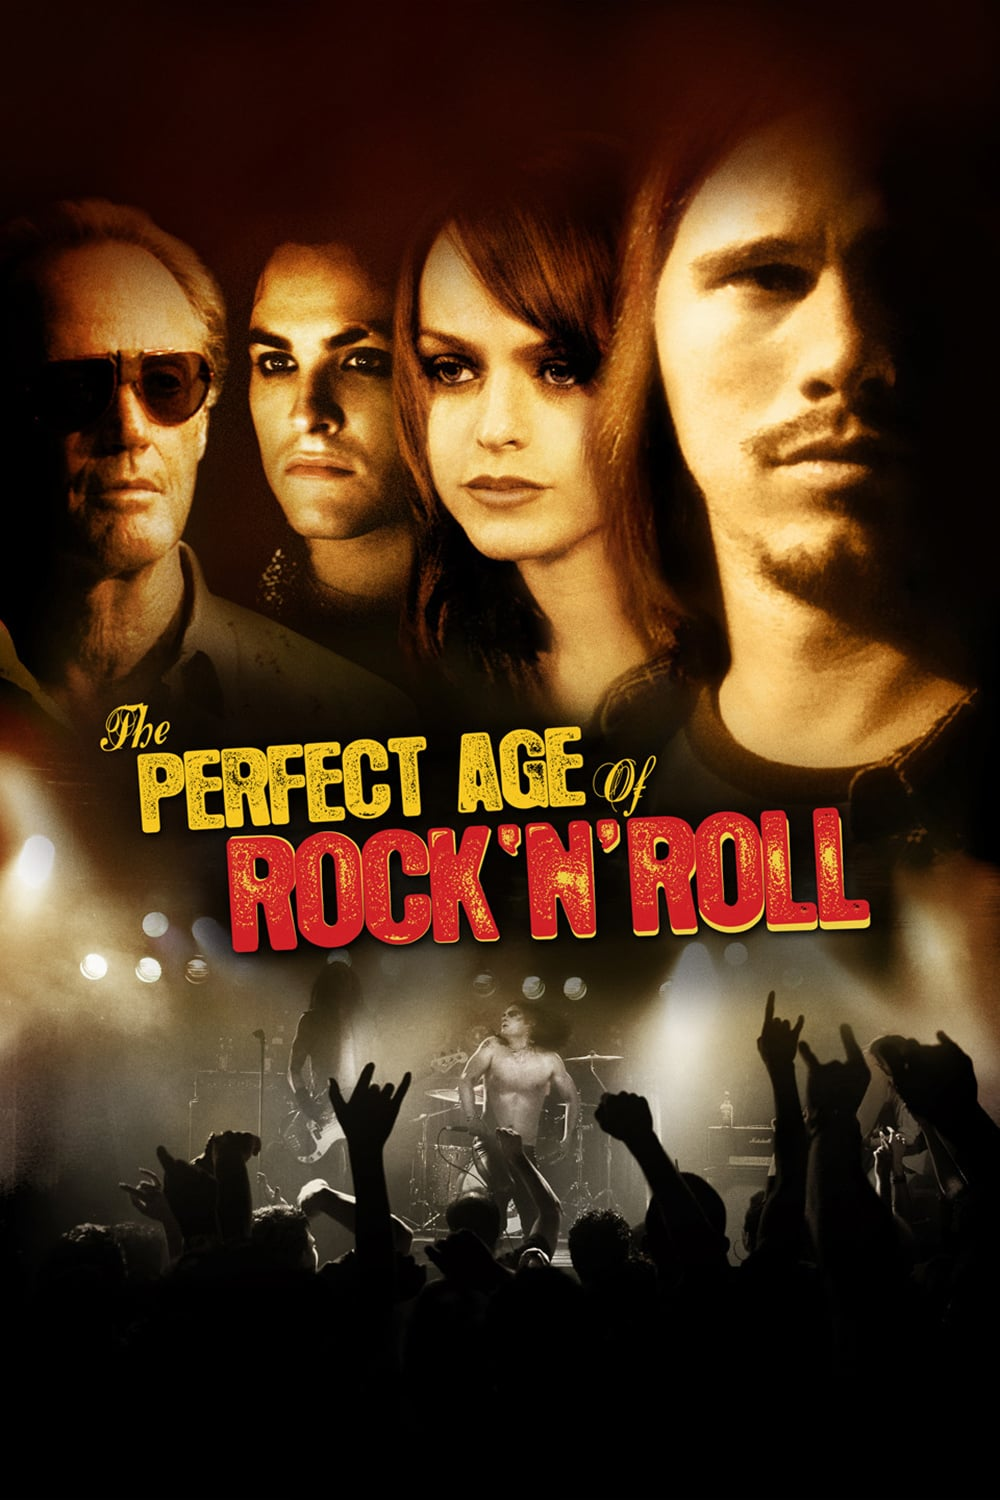 The Perfect Age of Rock 'n' Roll, 2009